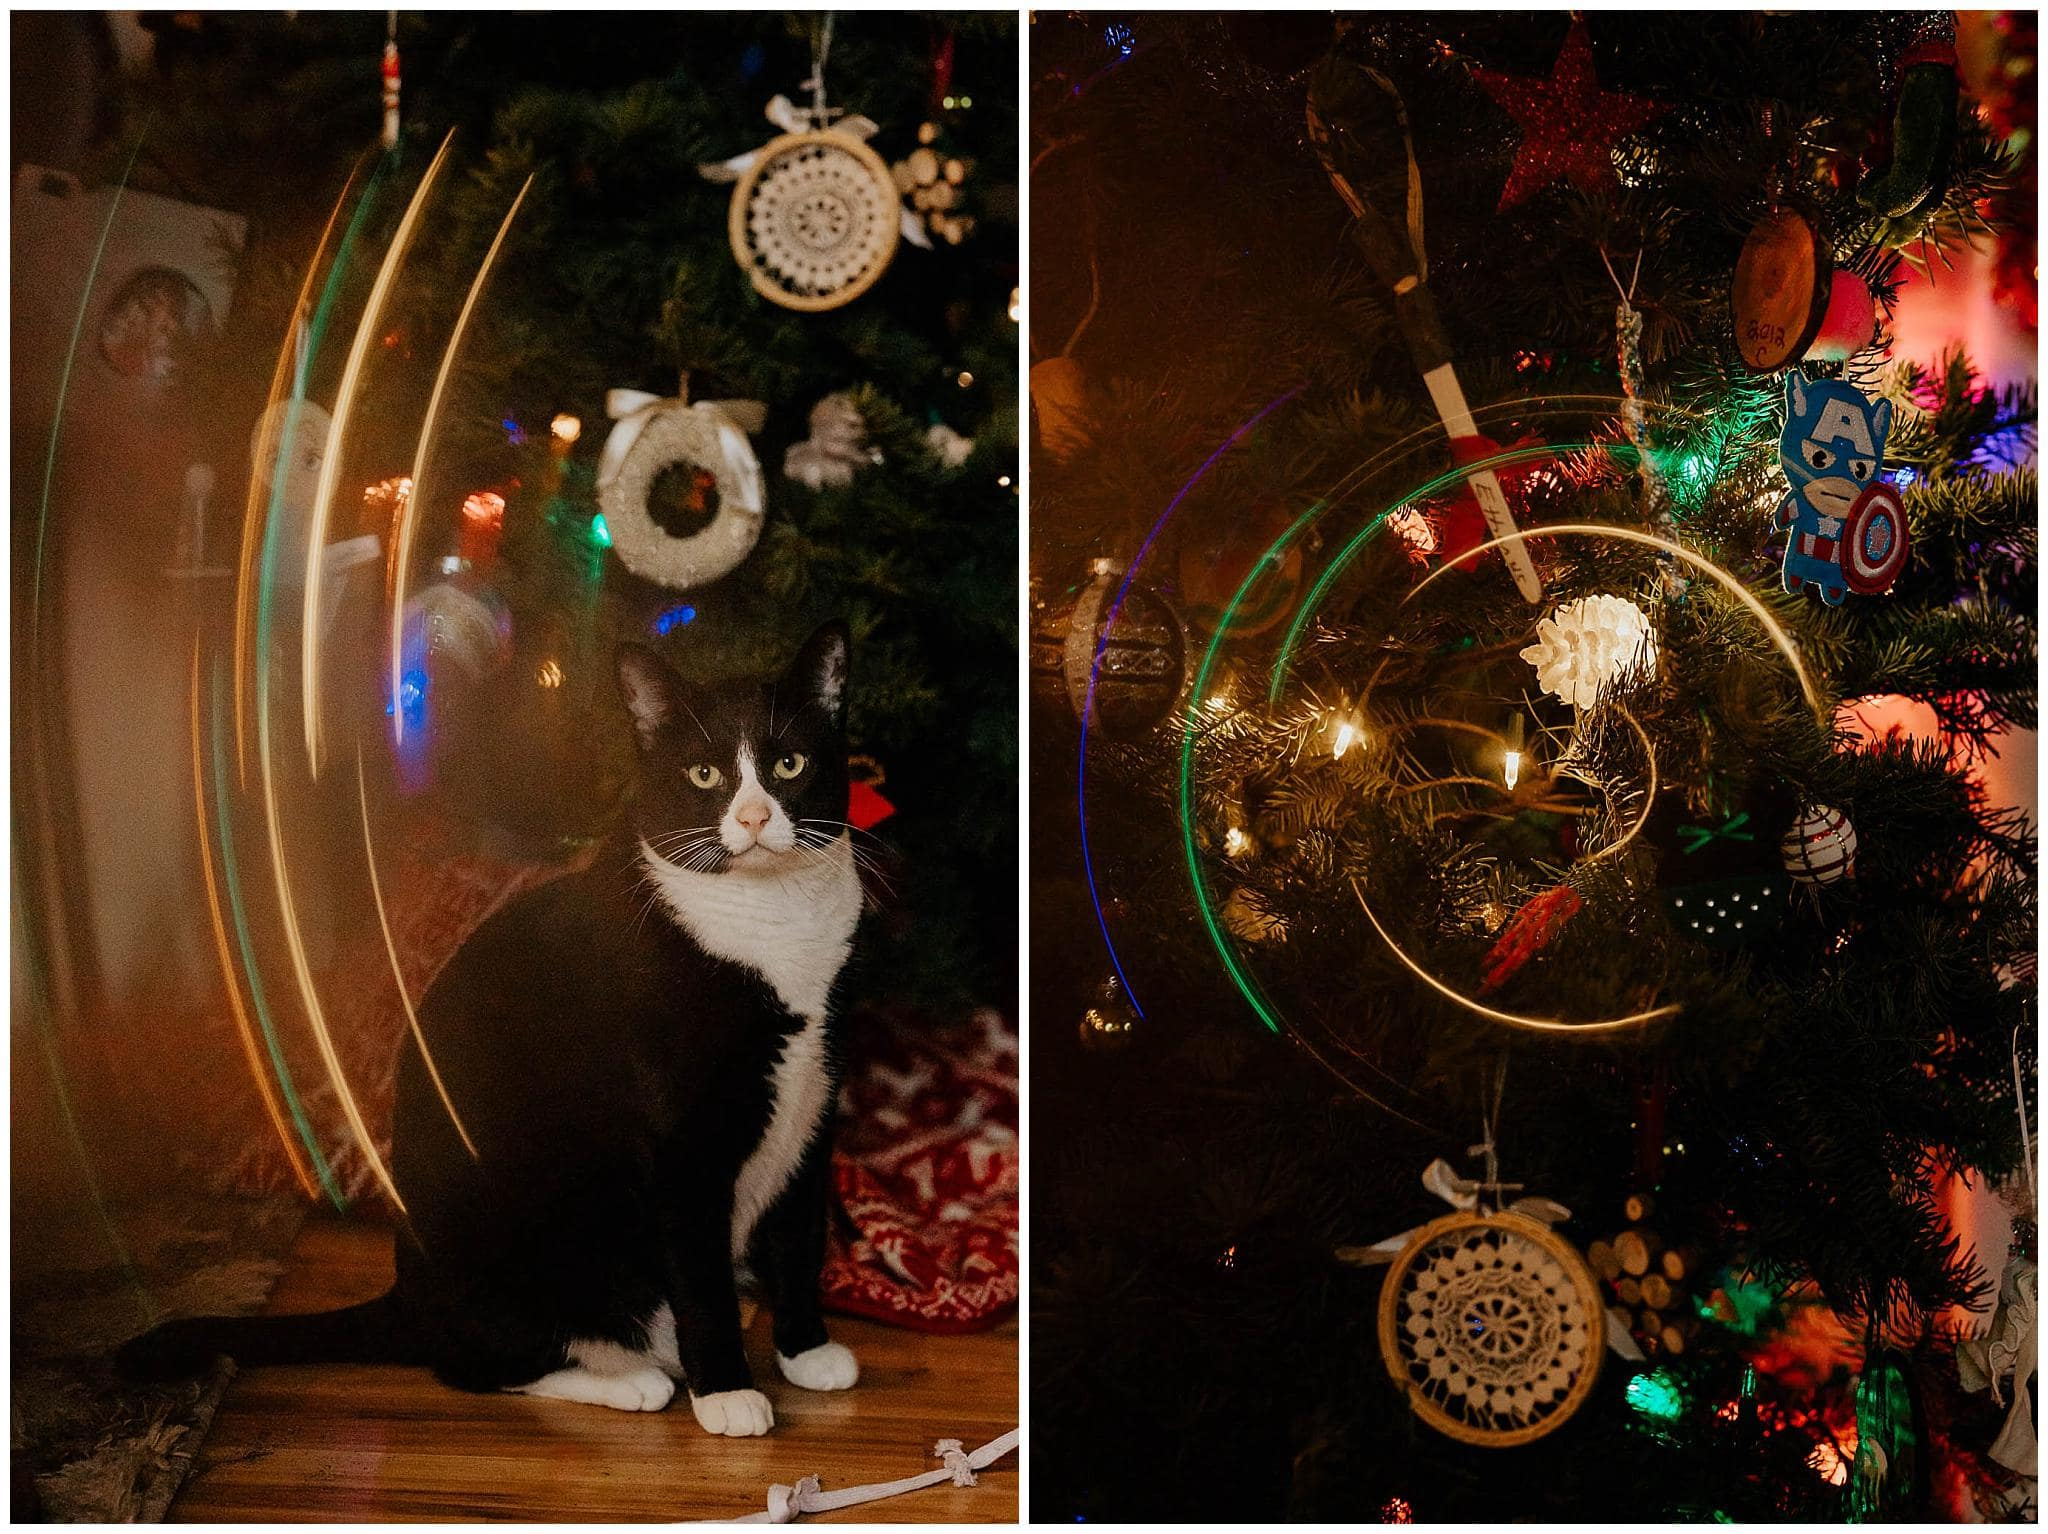 using a glass tube guitar slide to create a ring of fire photography effect with Christmas tree lights